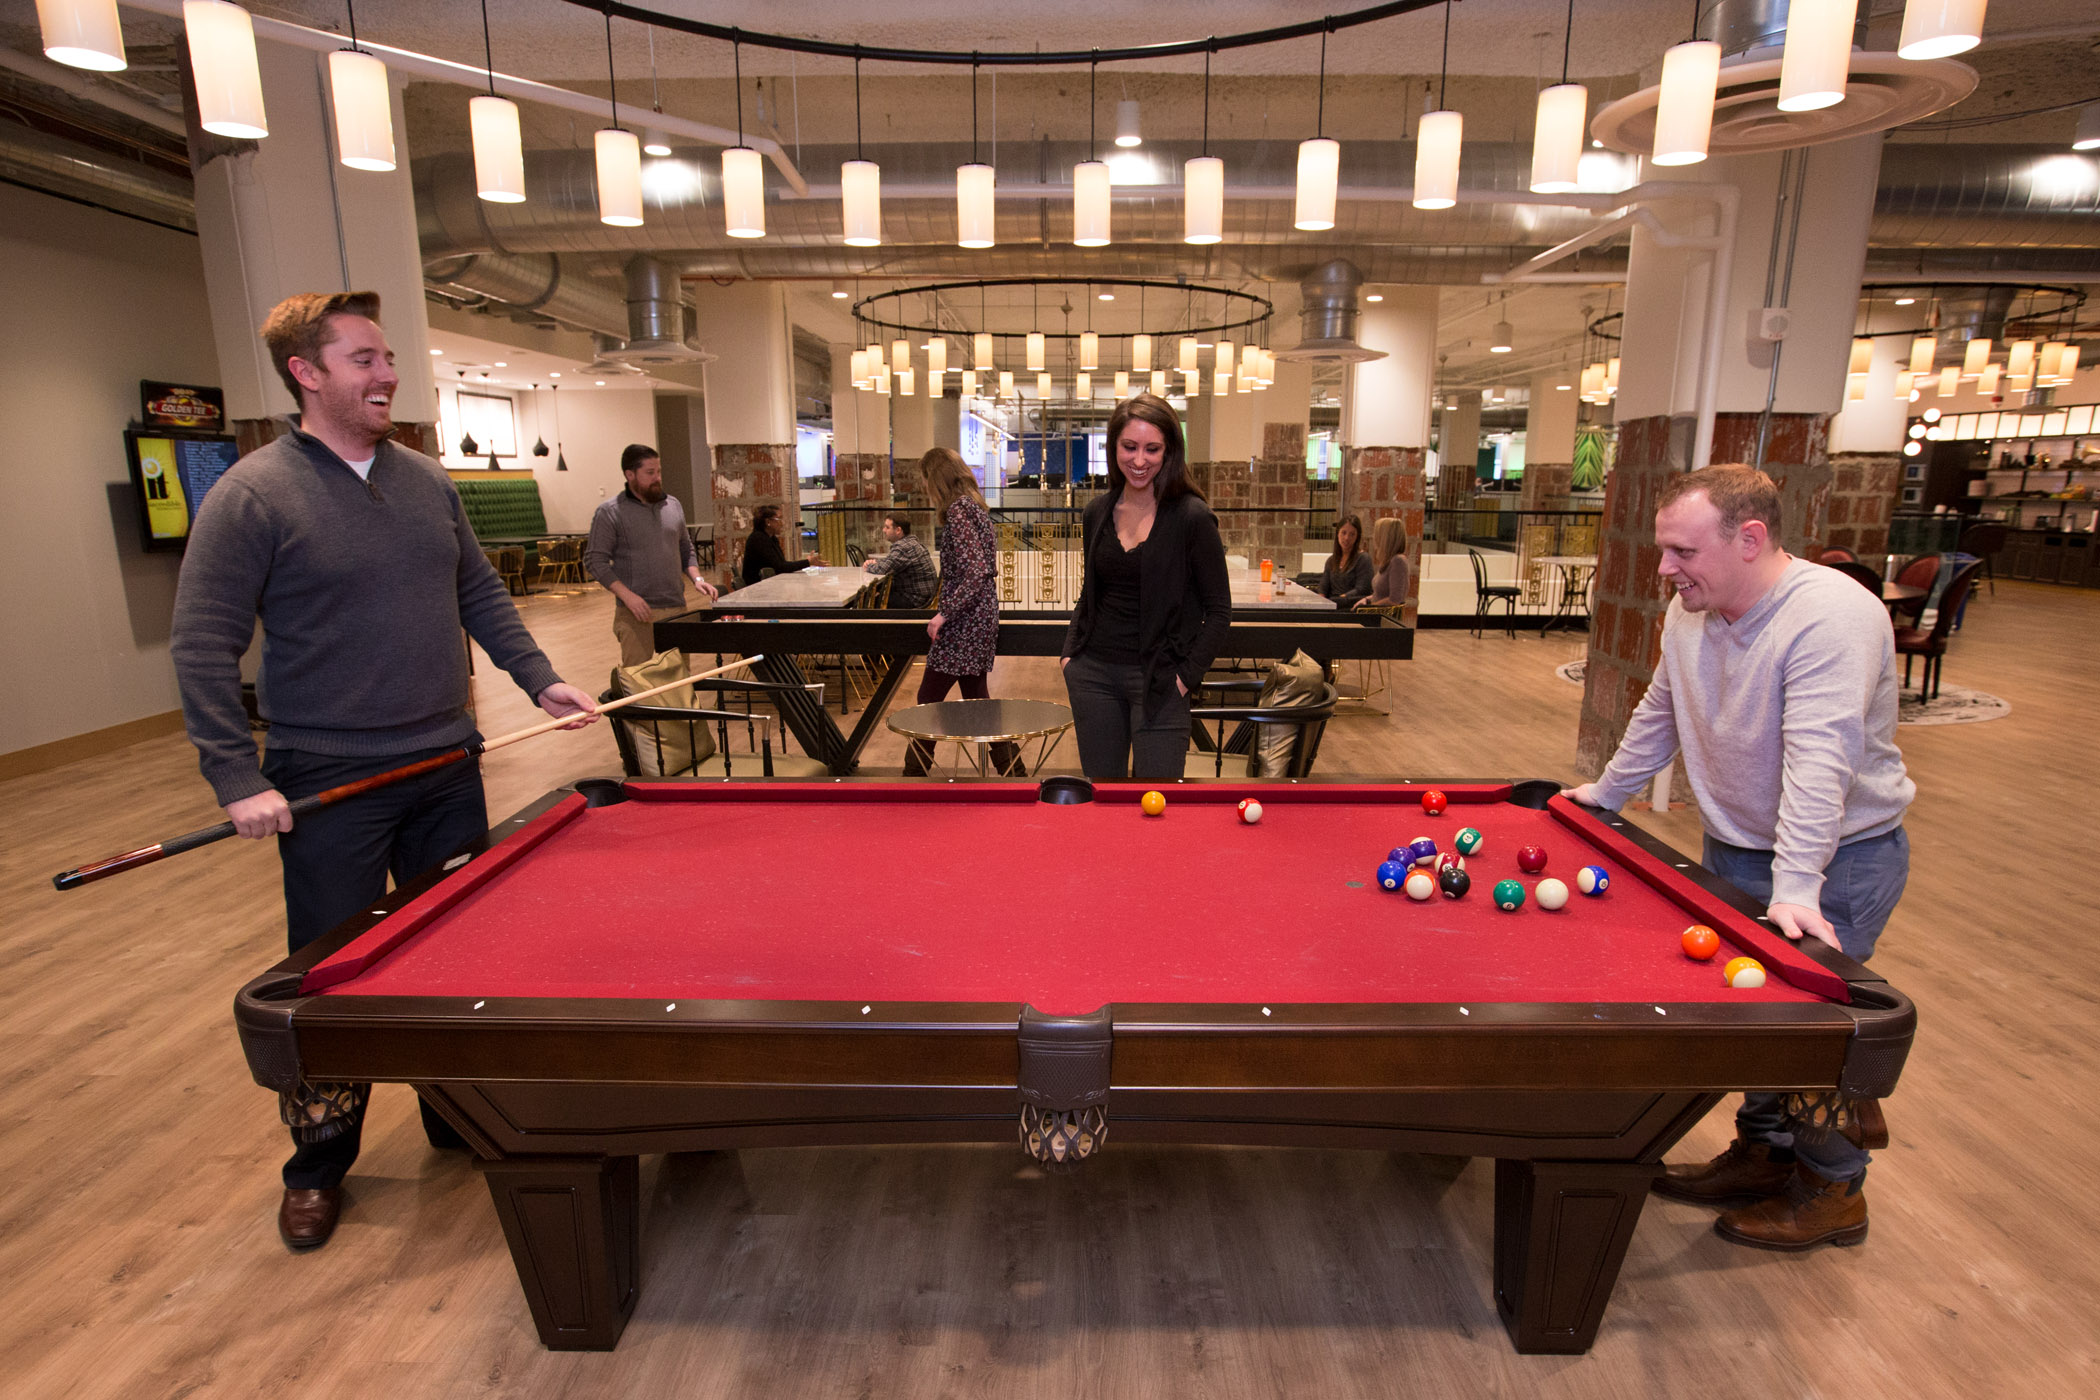 Culture Photo Of The Cleveland Office, 2017. Team Members Play Pool.